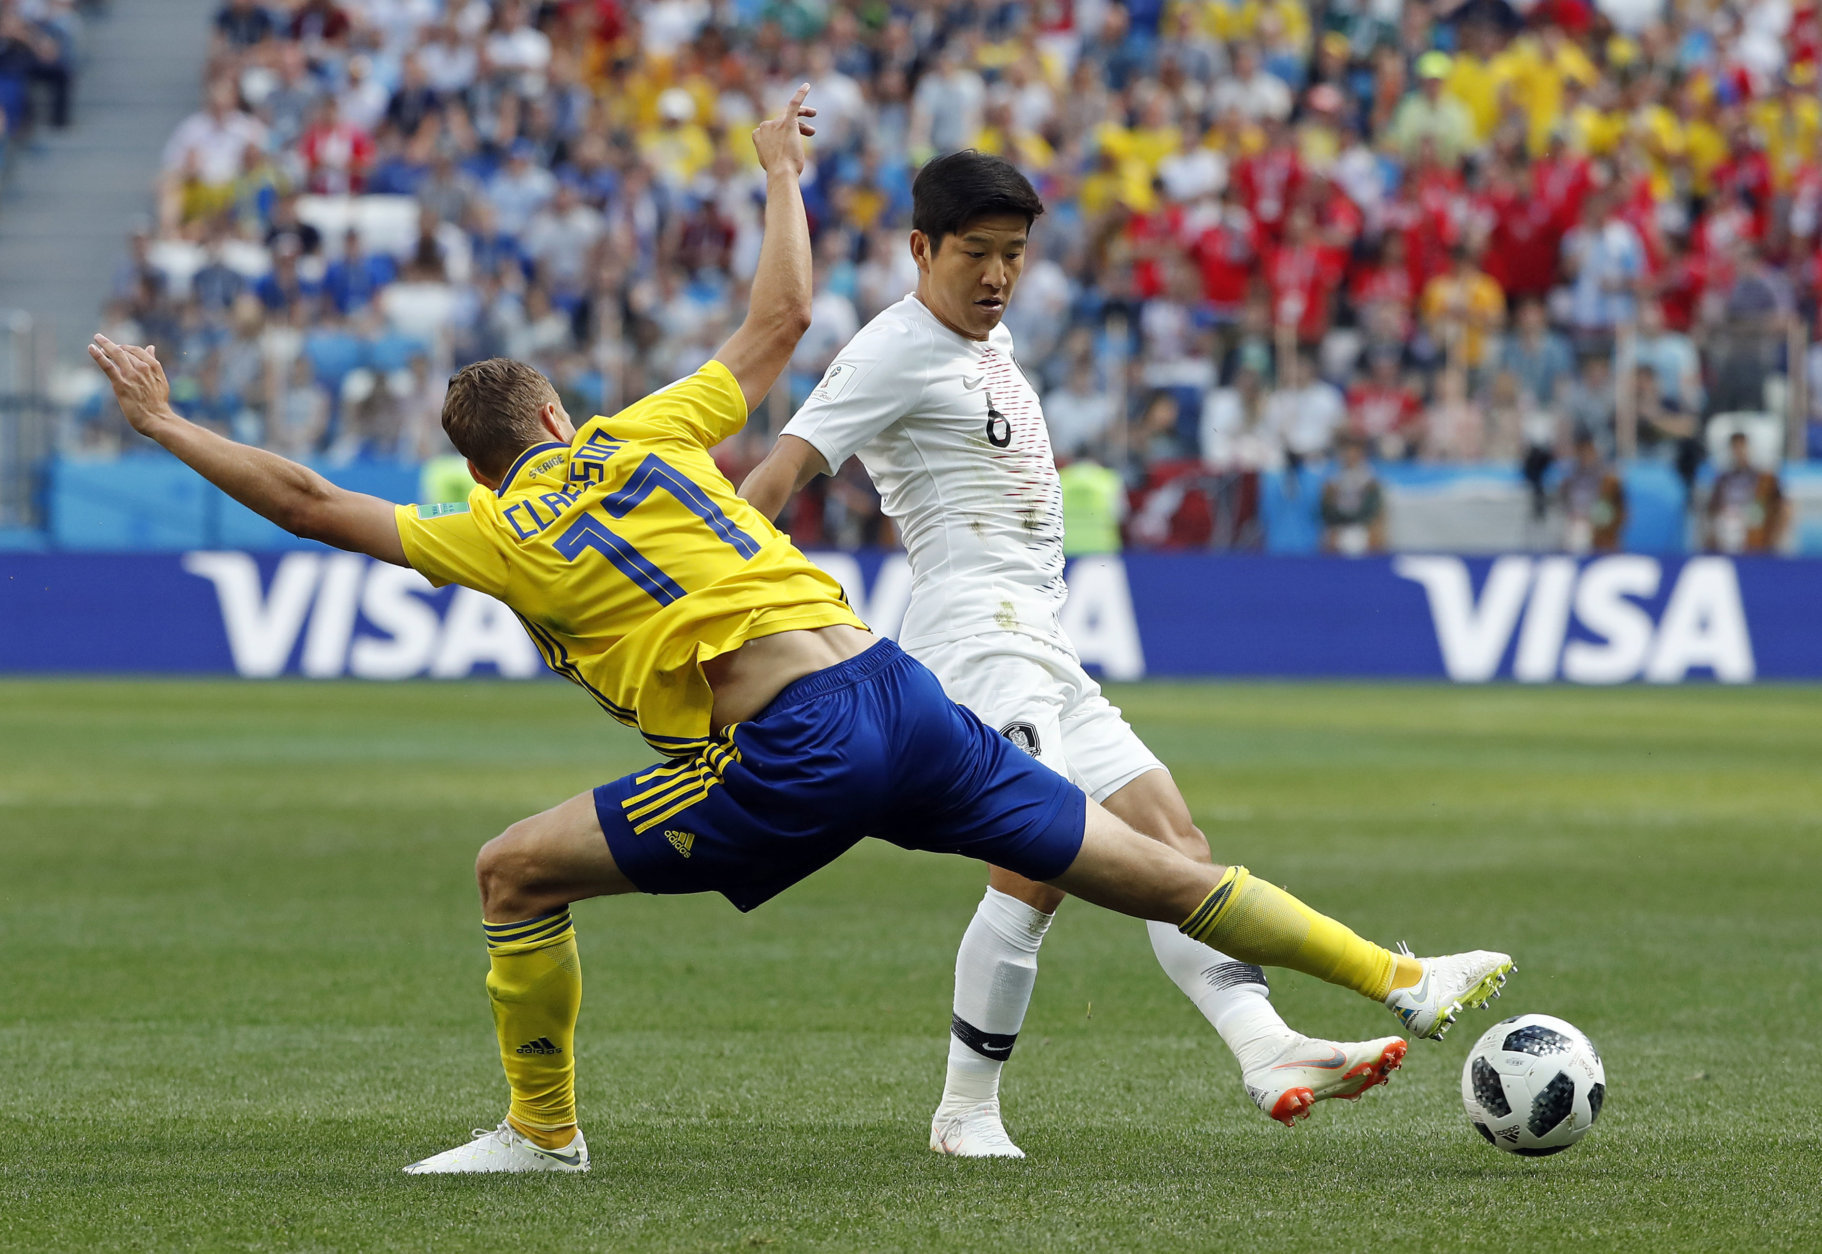 Sweden's Viktor Claesson, left, challenges South Korea's Park Joo-ho during the group F match between Sweden and South Korea at the 2018 soccer World Cup in the Nizhny Novgorod stadium in Nizhny Novgorod, Russia, Monday, June 18, 2018. (AP Photo/Pavel Golovkin)